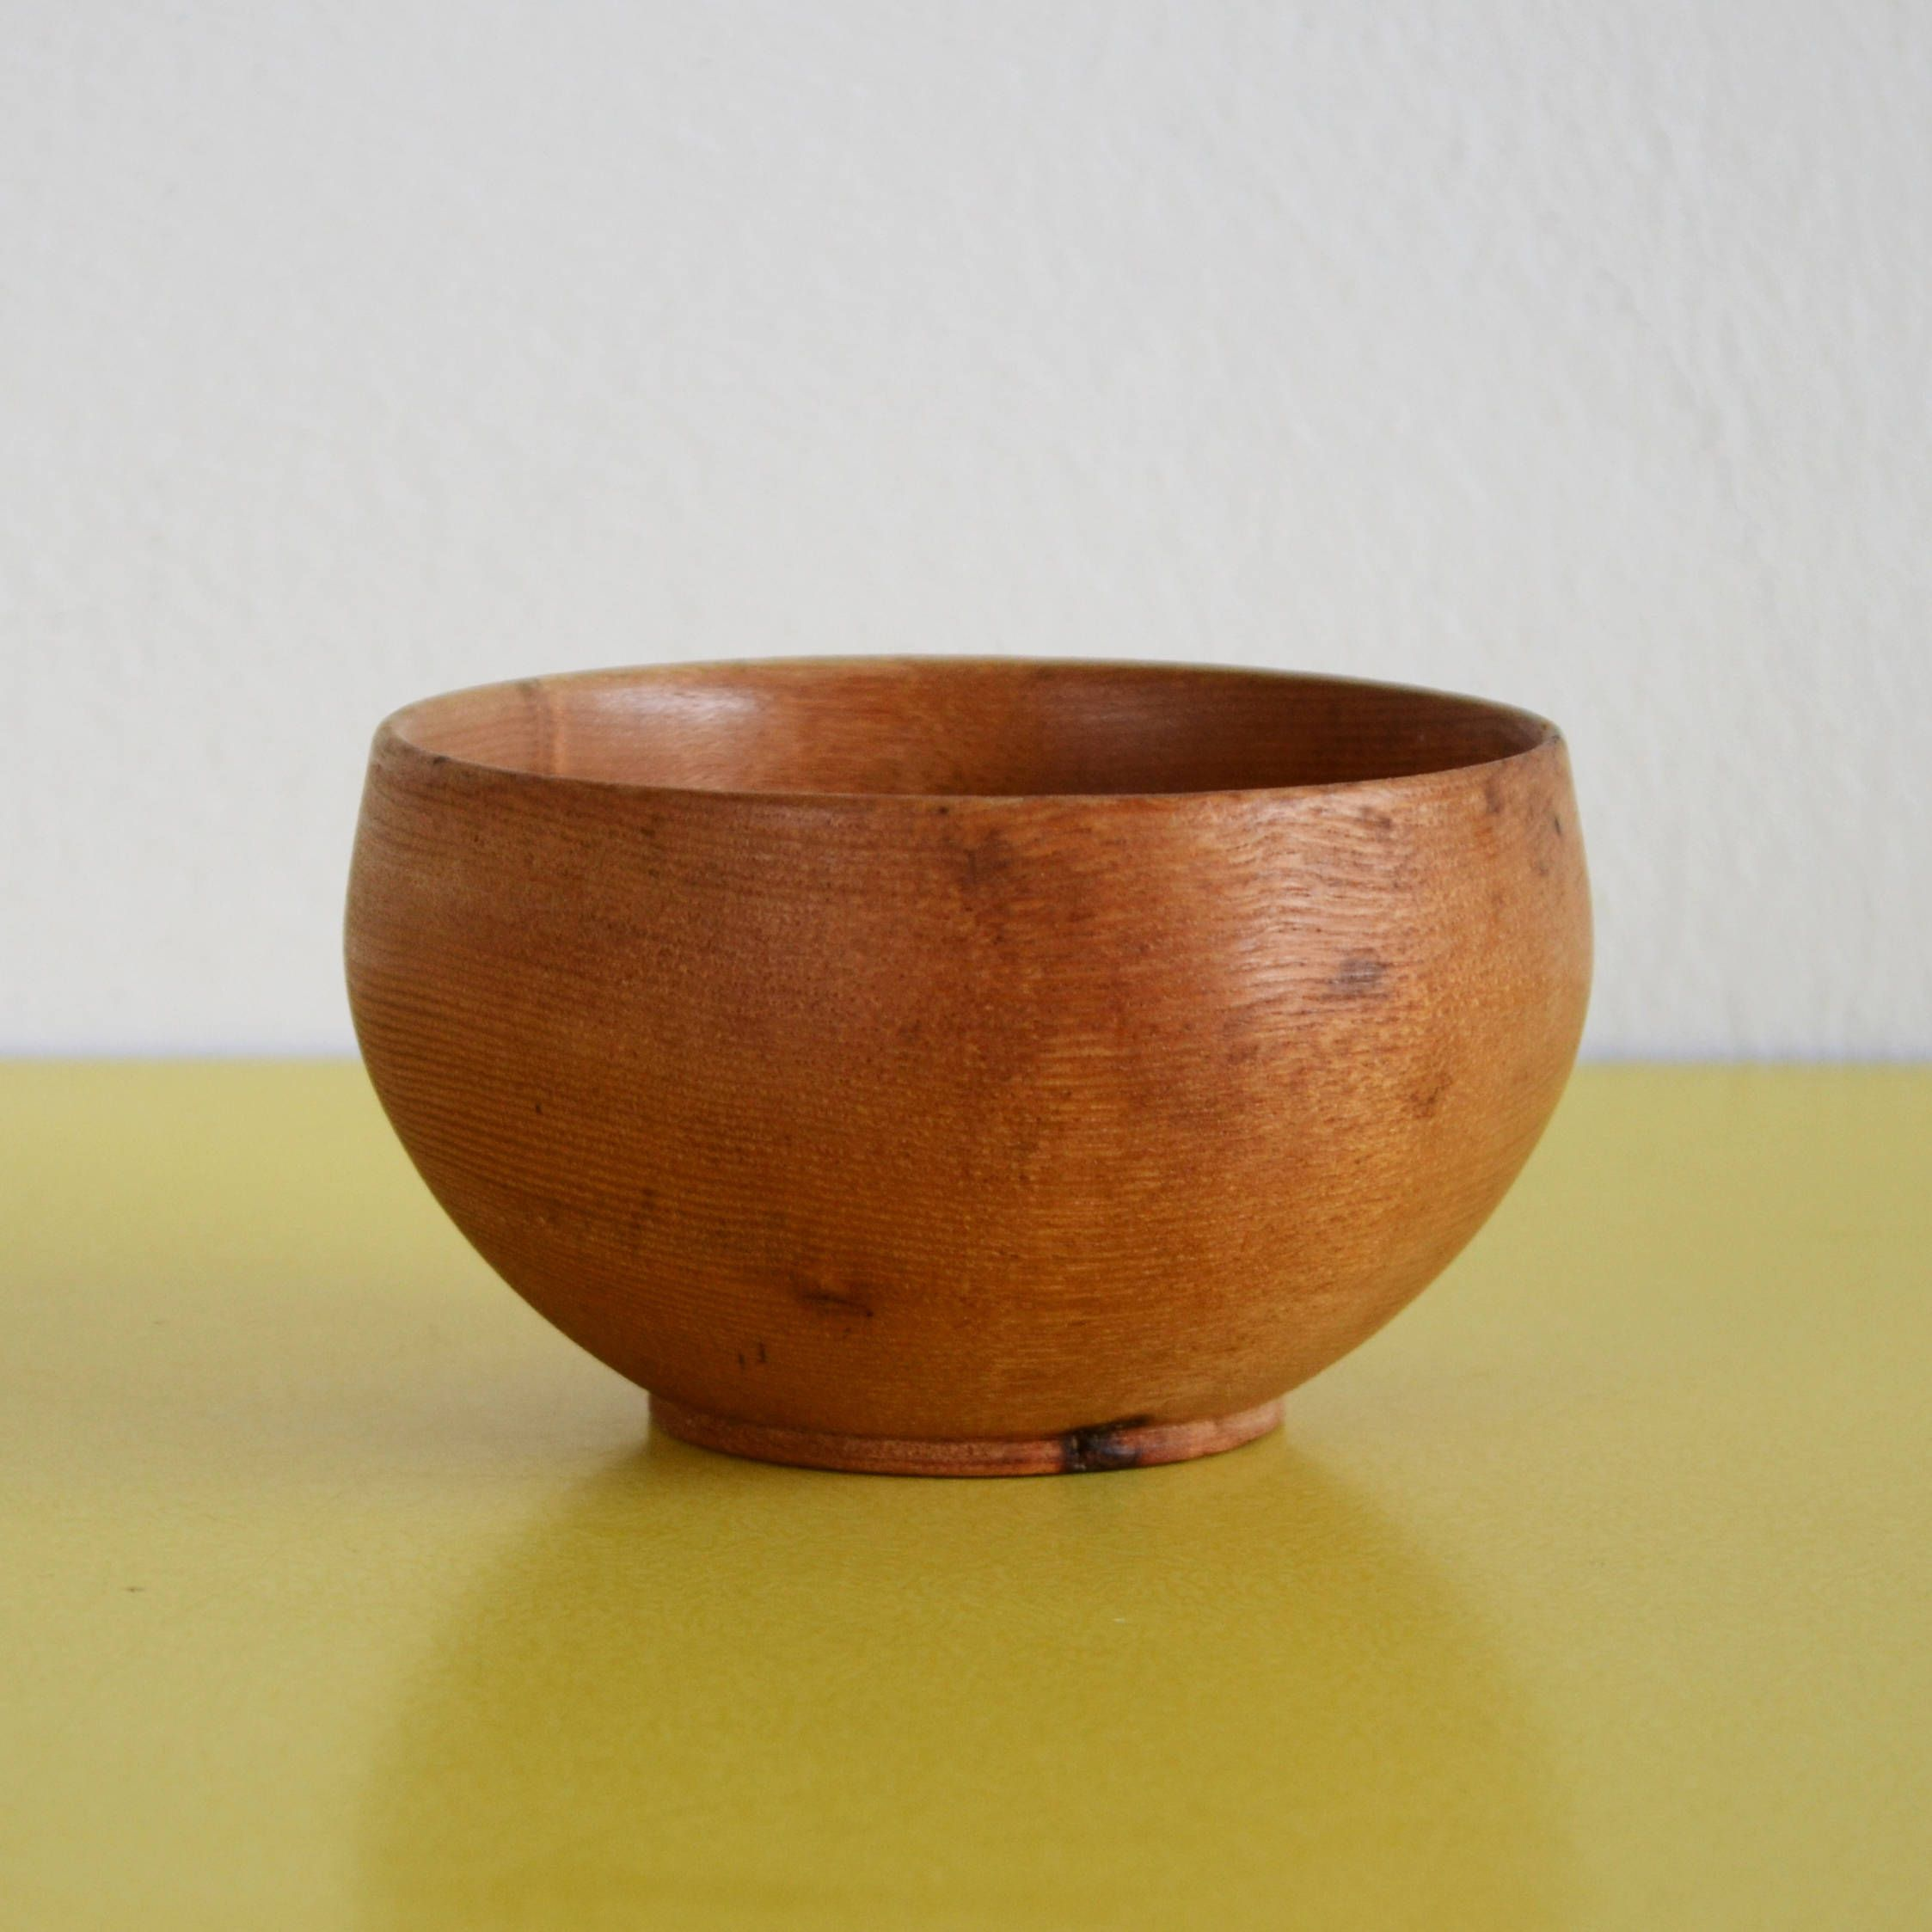 Wooden Decorative Bowls Vintage Wooden Bowl Small Rustic Wooden Trinket Dish Bohemian